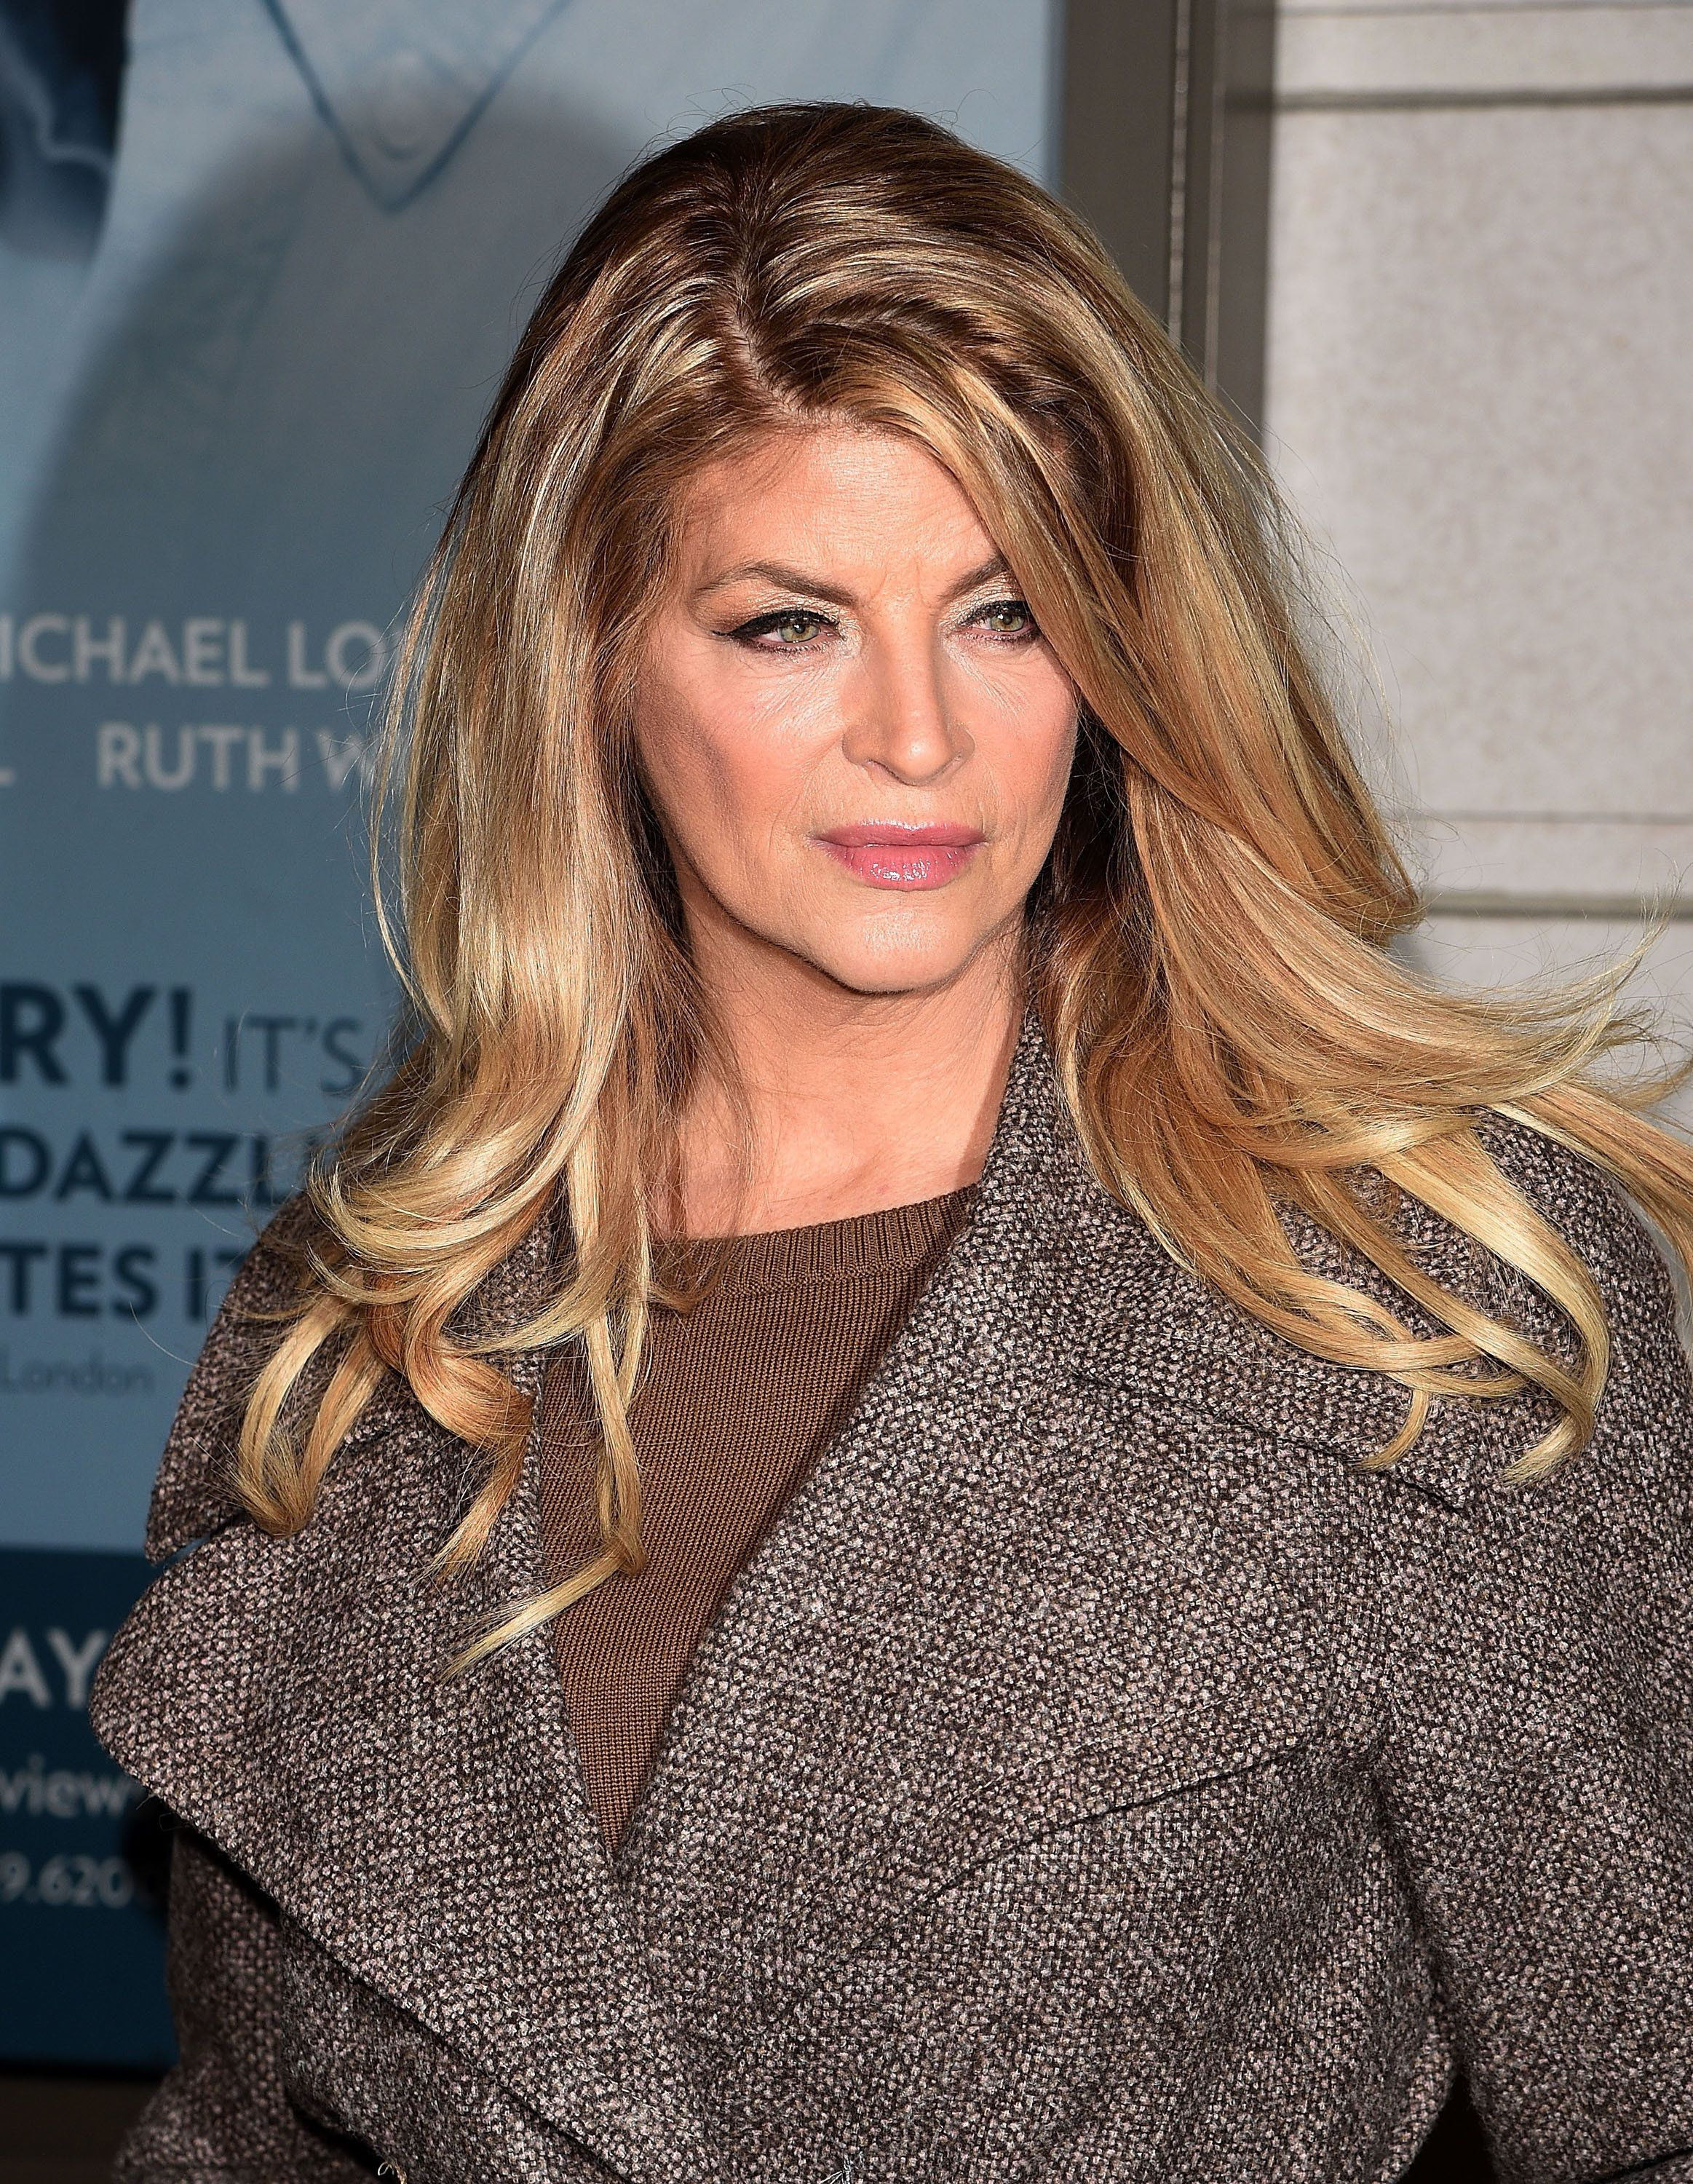 NEW YORK, NY - JANUARY 13:  Kirstie Alley attends 'Constellations' Broadway opening night at Samuel J. Friedman Theatre on January 13, 2015 in New York City.  (Photo by Andrew H. Walker/Getty Images)